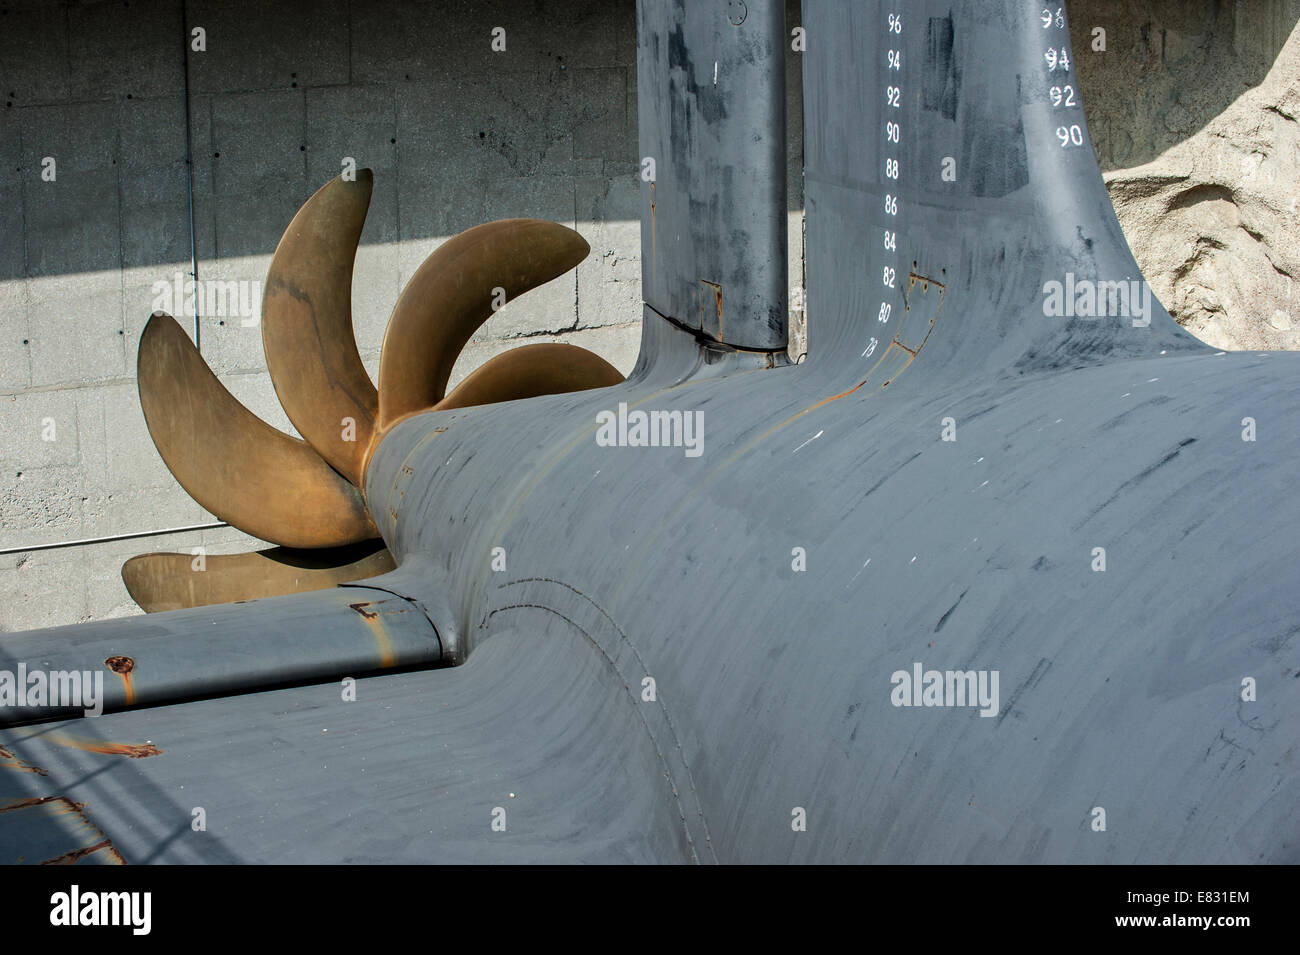 Propeller / screw of Redoutable, SSBN submarine of French Navy at Cité de la Mer, maritime museum, Cherbourg, - Stock Image